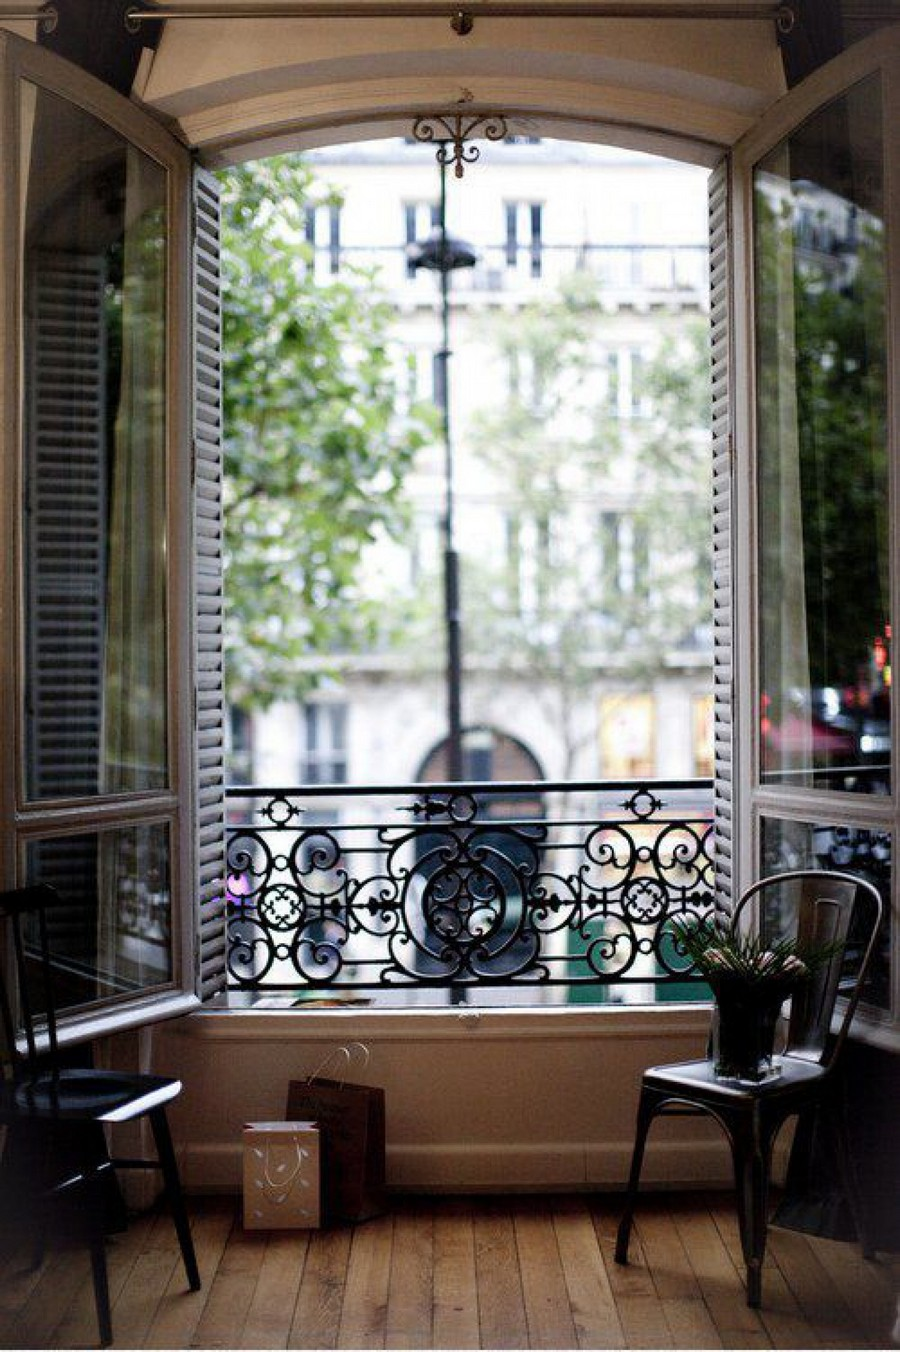 39-beautiful-balconet-balconette-Juliet-balcony-in-interior-design-wrough-metal-railing-forgery-barrier